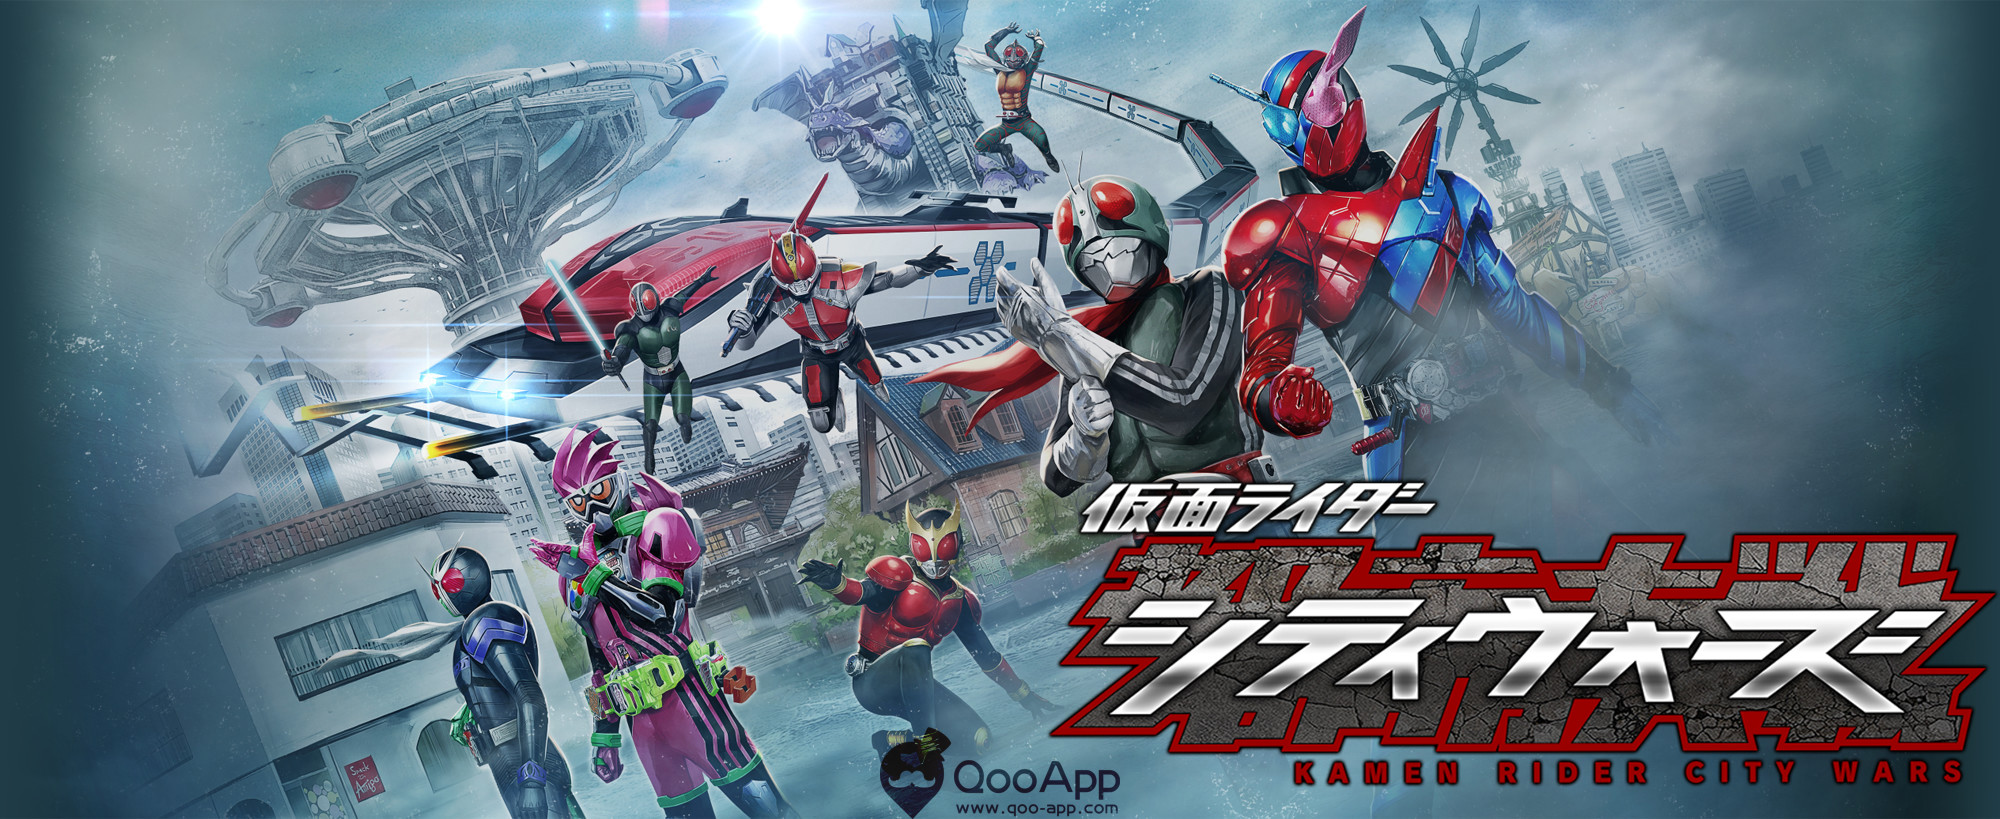 Bandai Namco Releases Second PV for Kamen Rider: City Wars